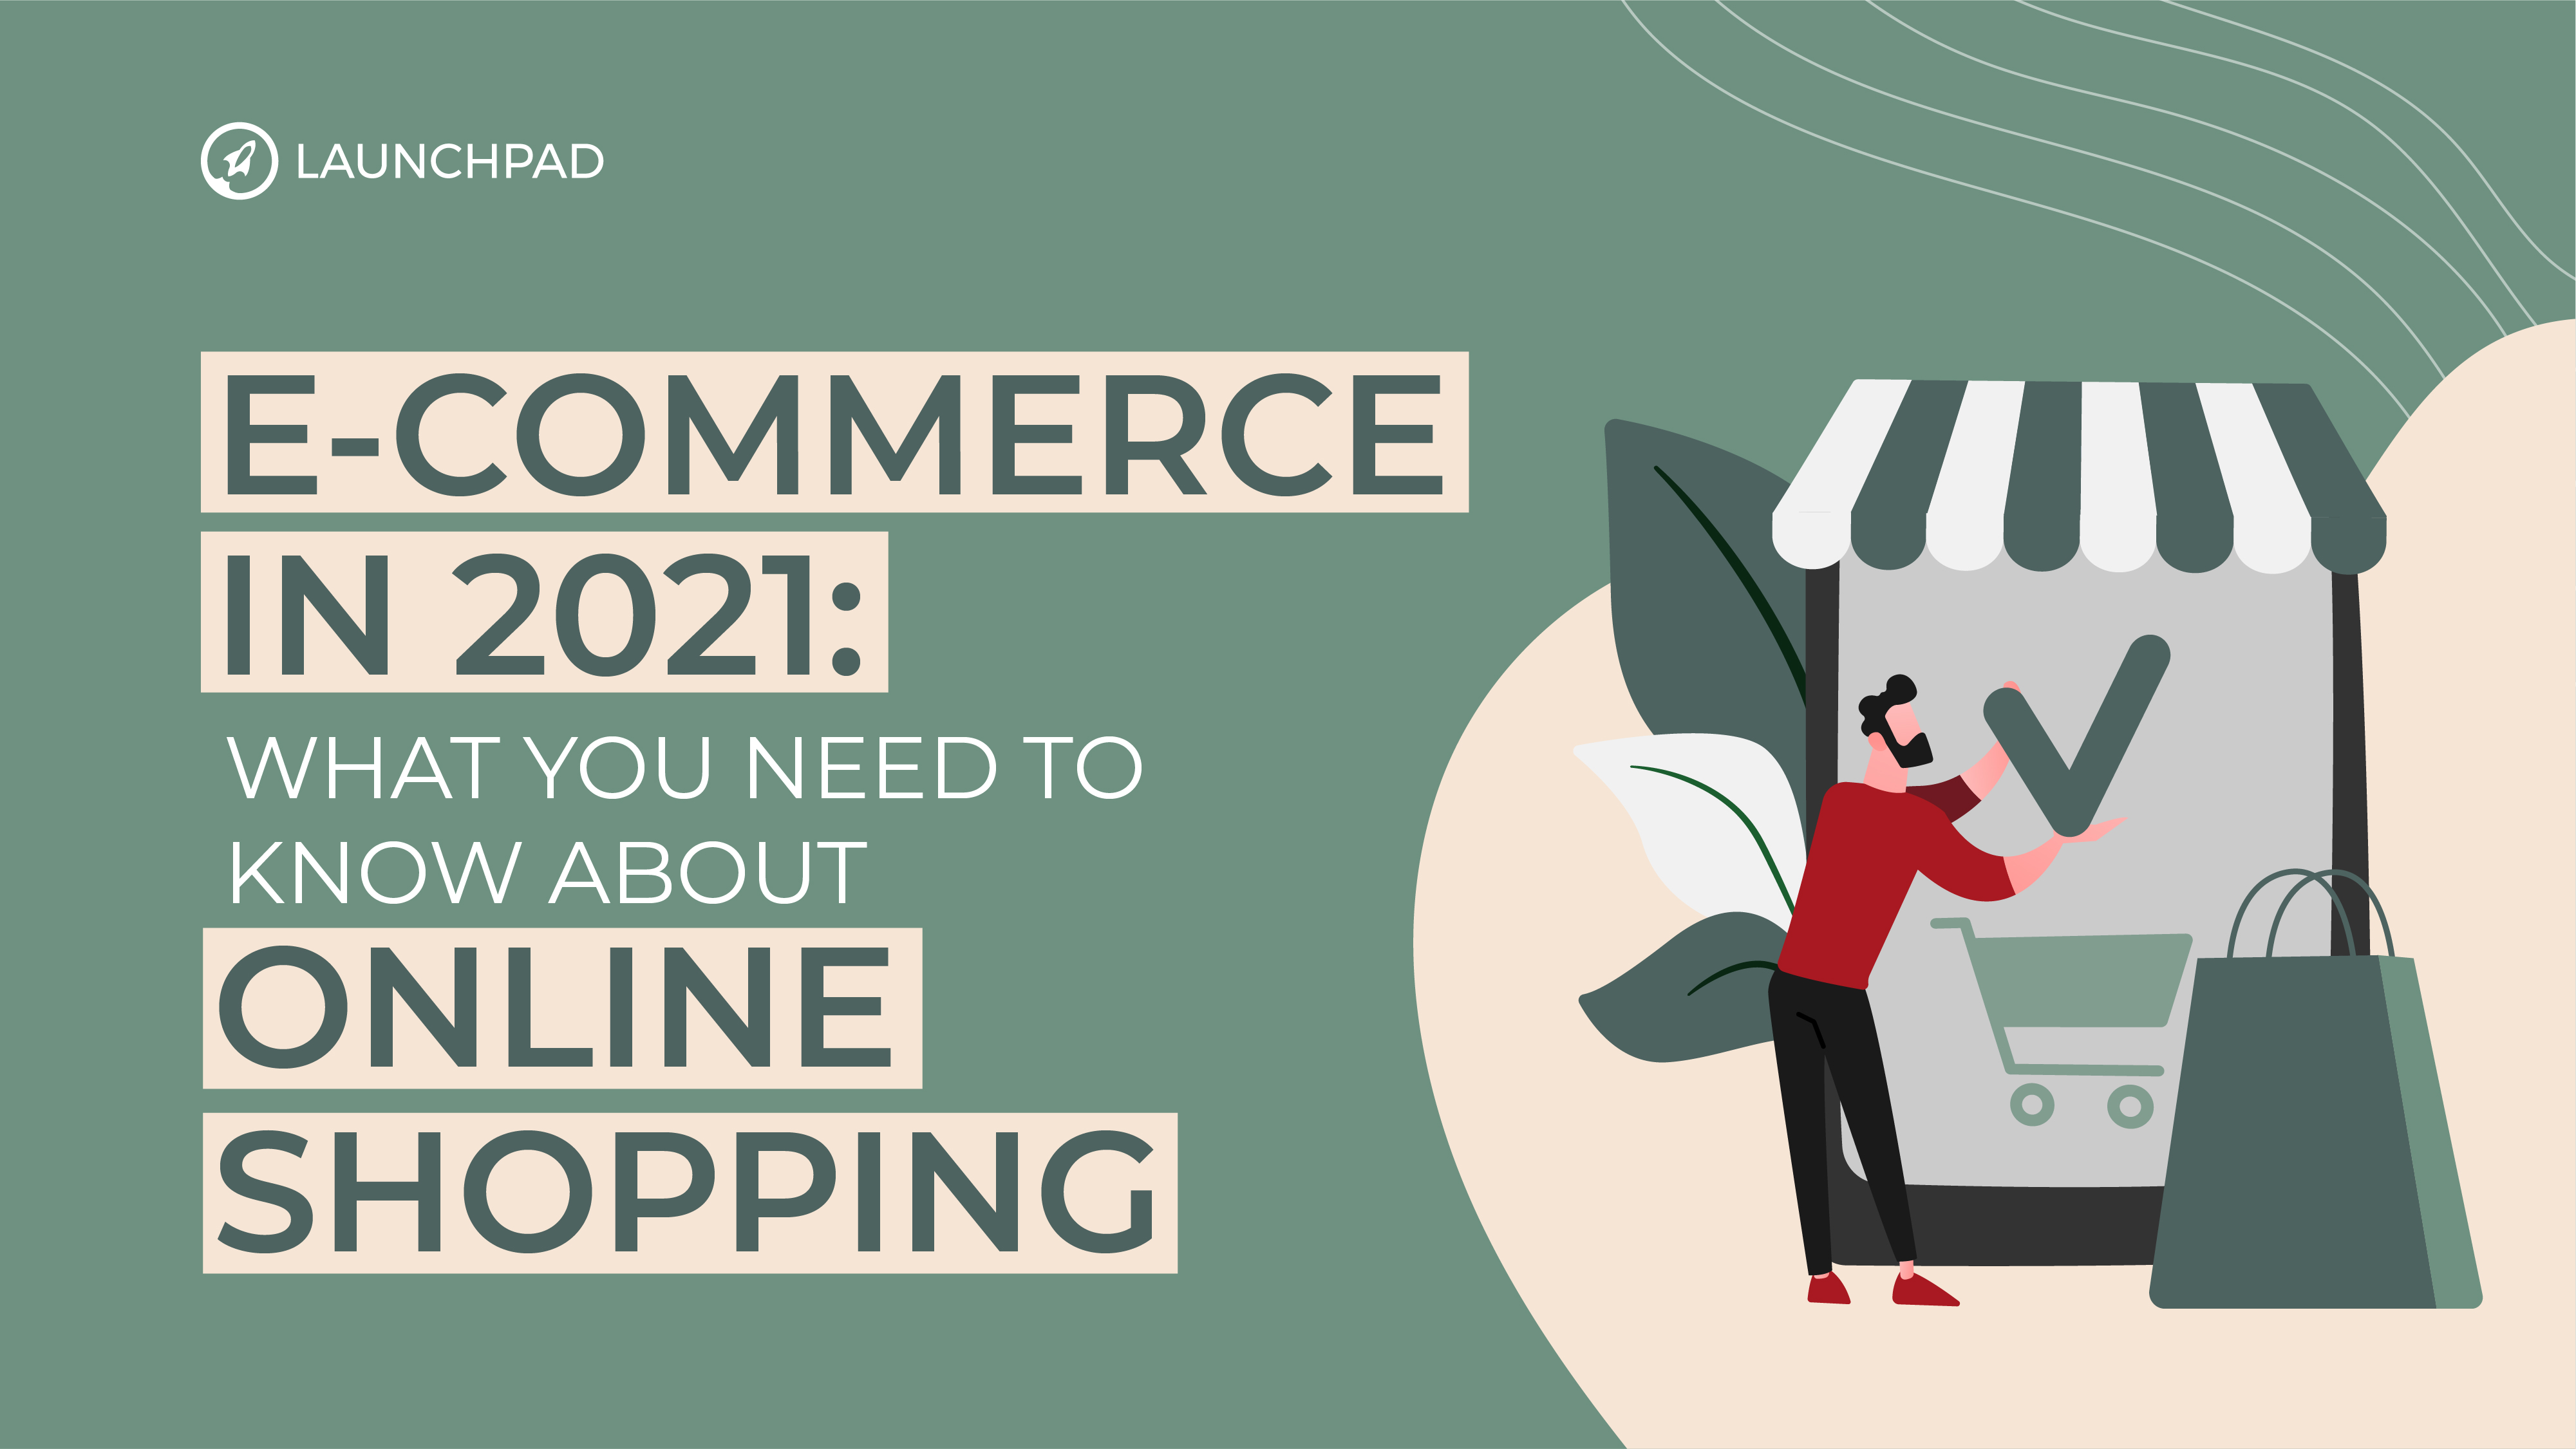 e-Commerce in 2021- What You Need to Know About Online Shopping This Year